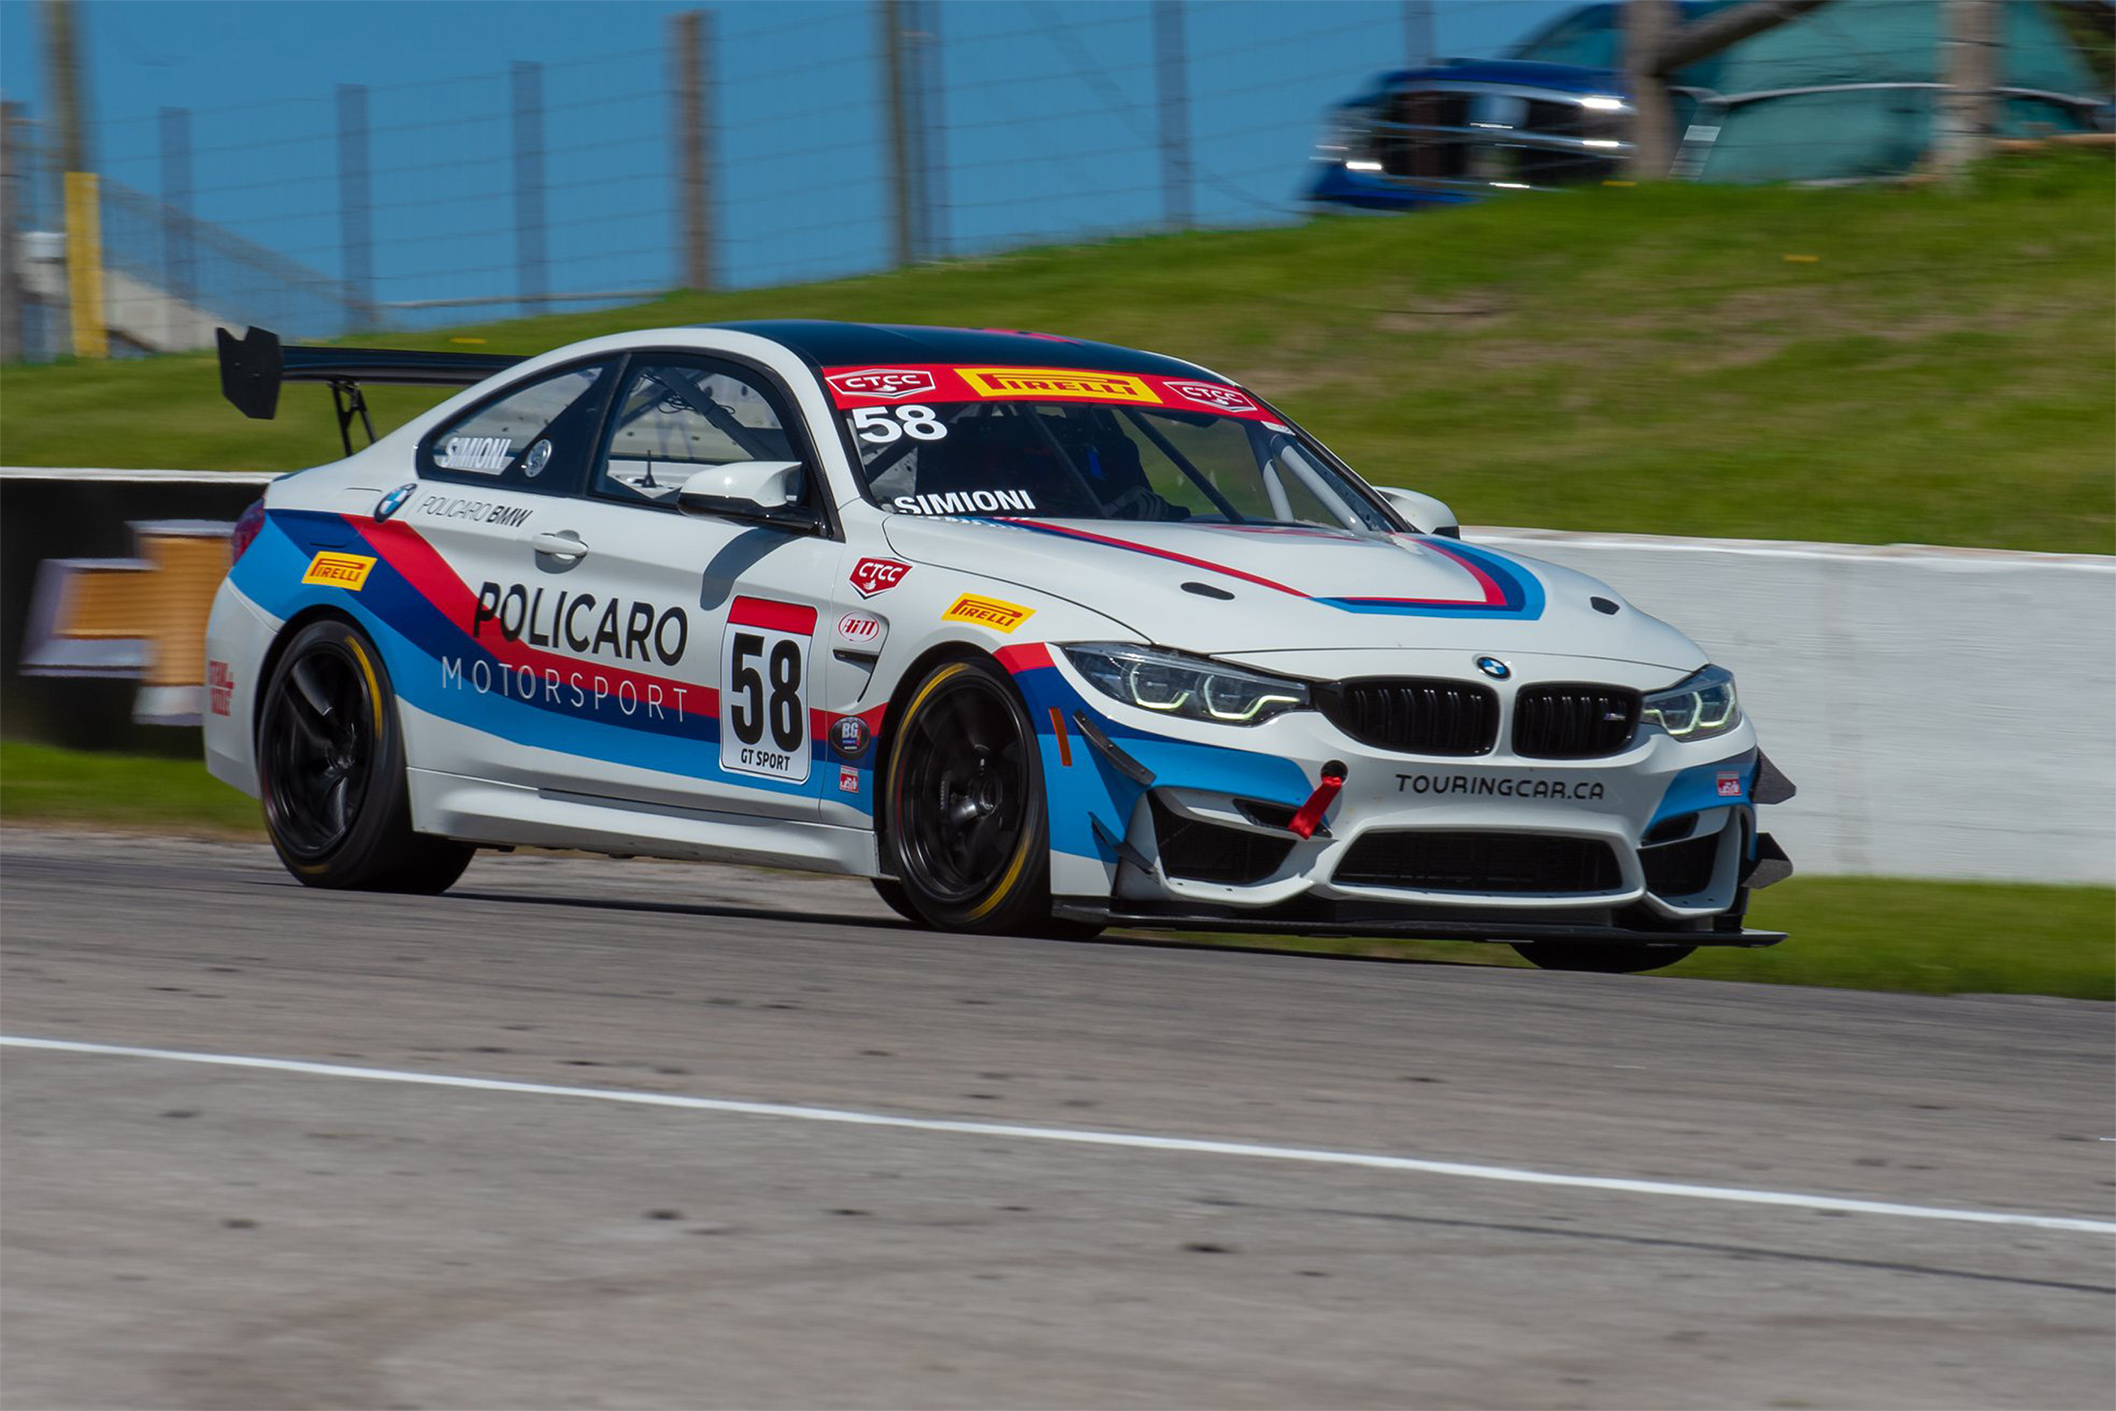 TrackWorthy - Canadian Touring Car Championship at Canadian Tire Motorsport Park (6)